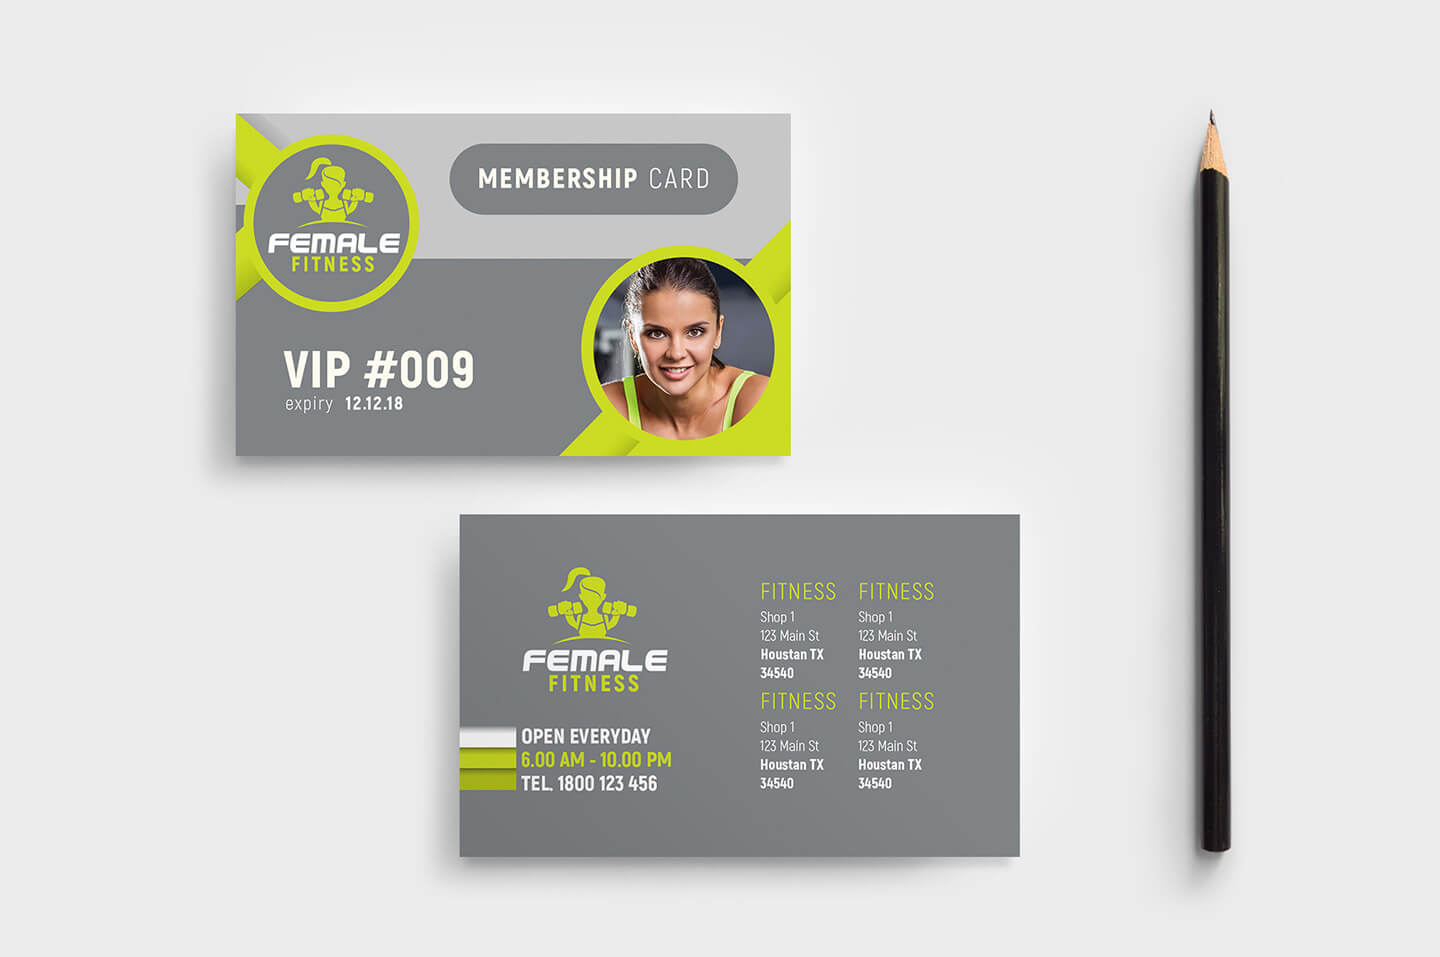 Female Fitness Membership Card Template In Psd, Ai Intended For Gym Membership Card Template